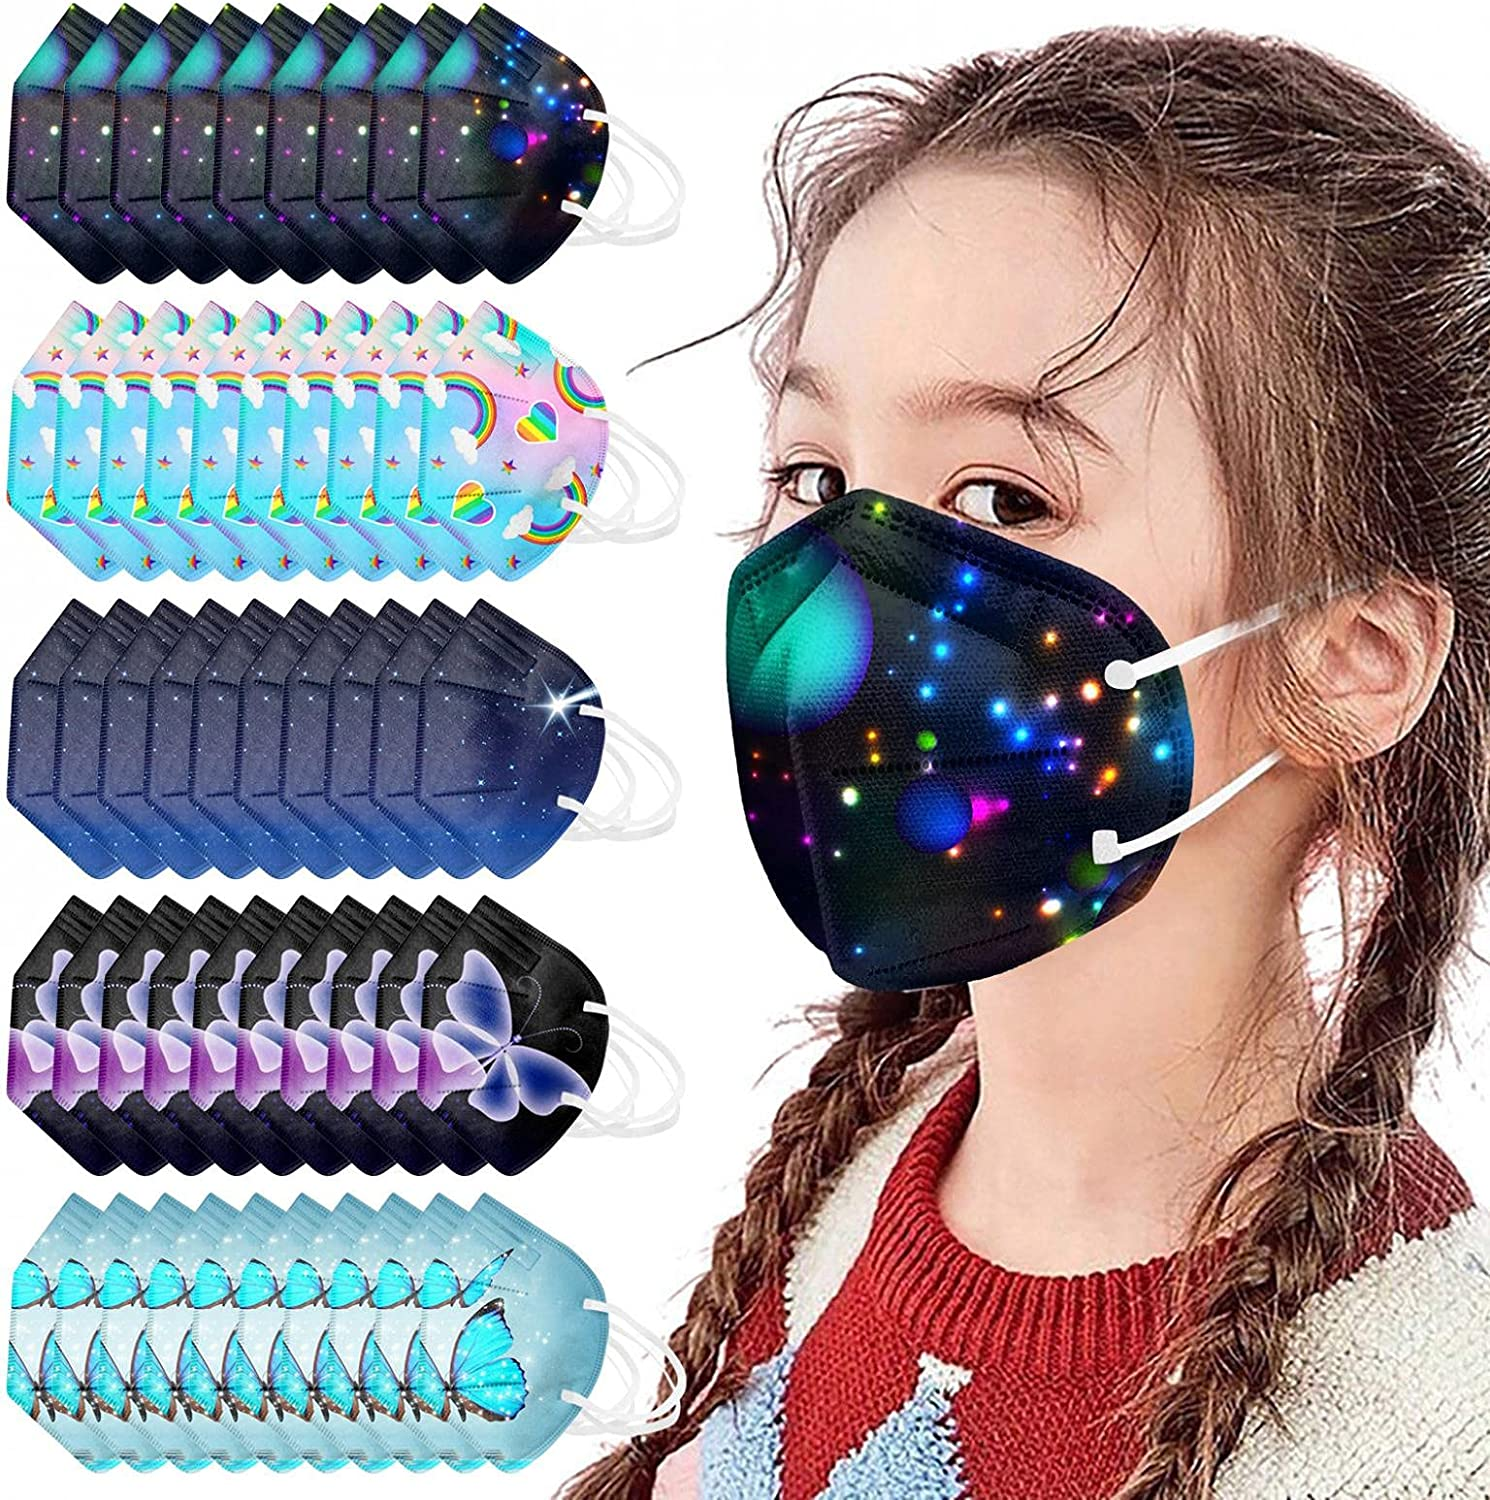 50pcs kid's KF94 Face_Mask 4-Ply 4-12Year for kids NEW before selling 3D KF94_Mask Brand new